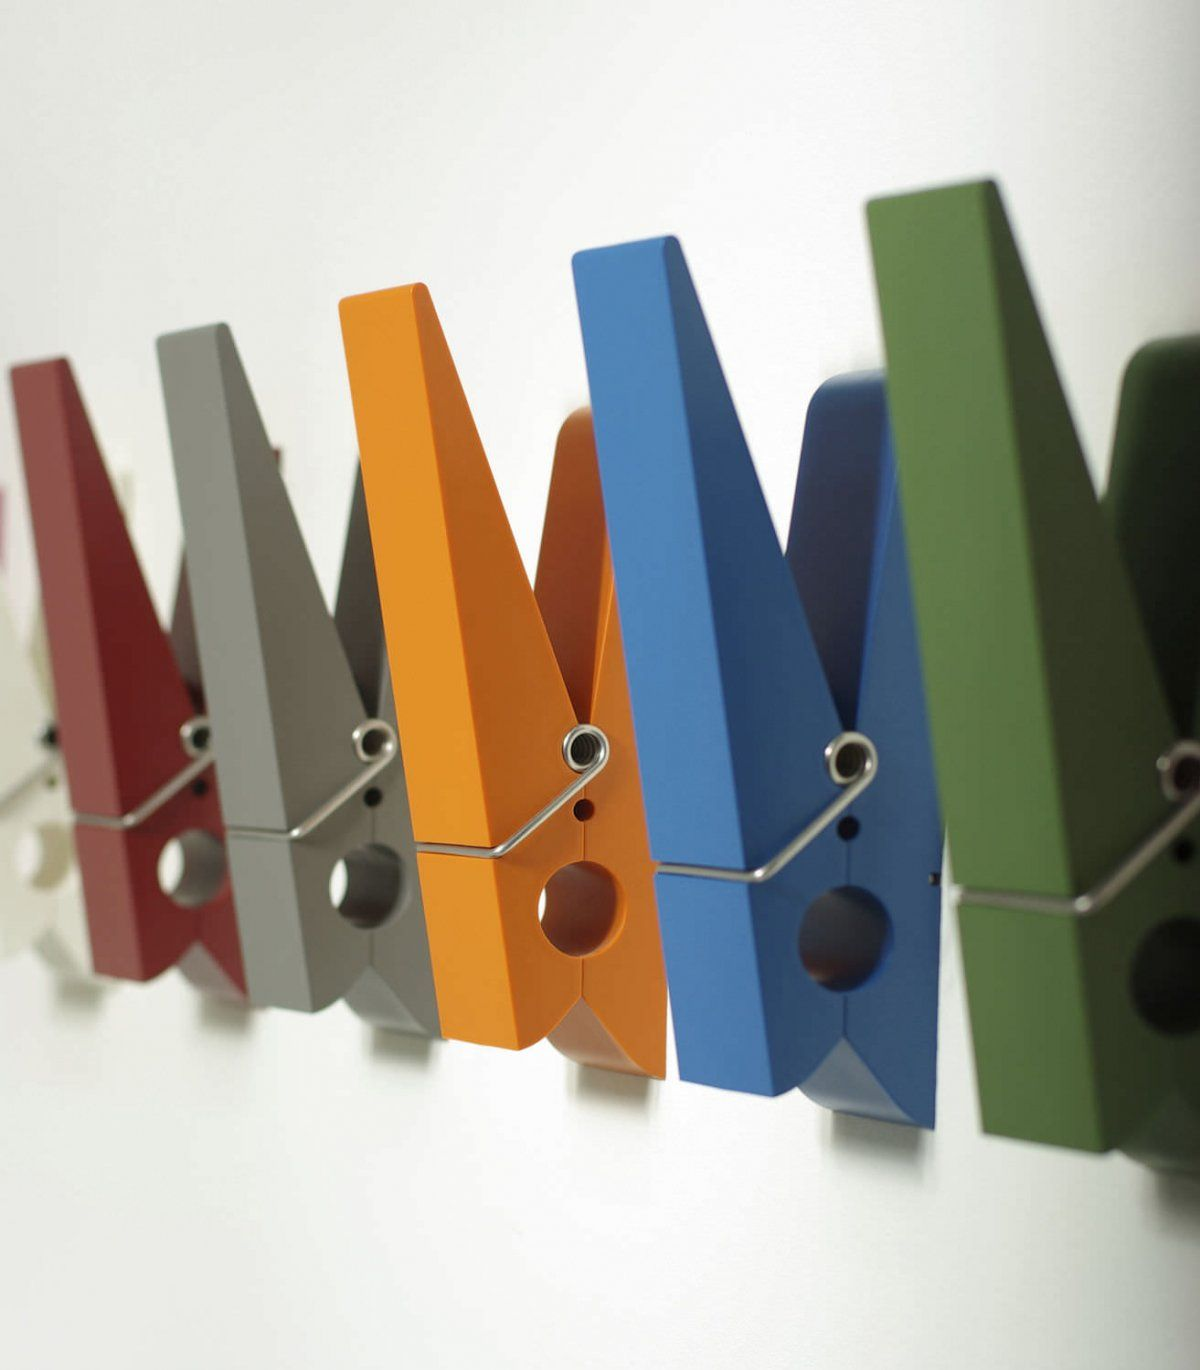 Unique wall mounted coat racks funky coat racks for Creative ideas for coat racks